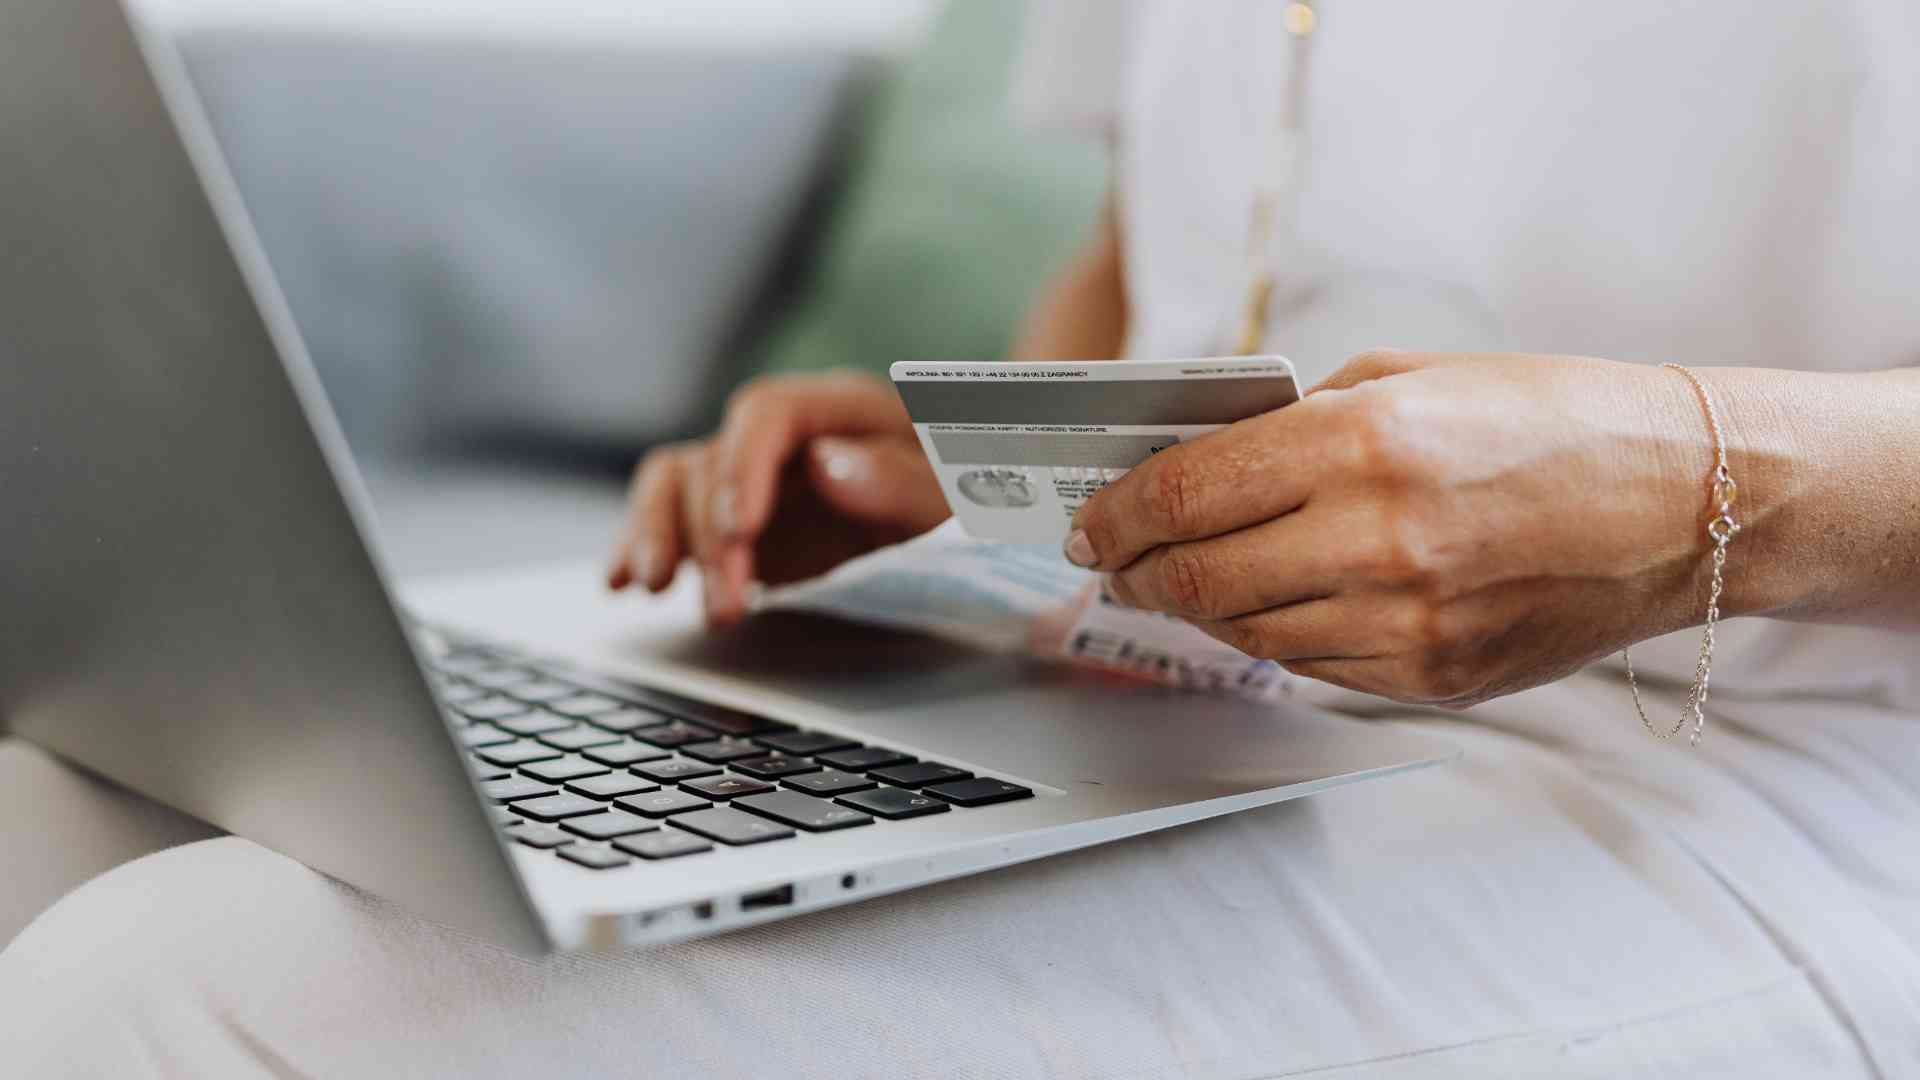 Woman Credit Card Laptop 2020 Shopping Trends